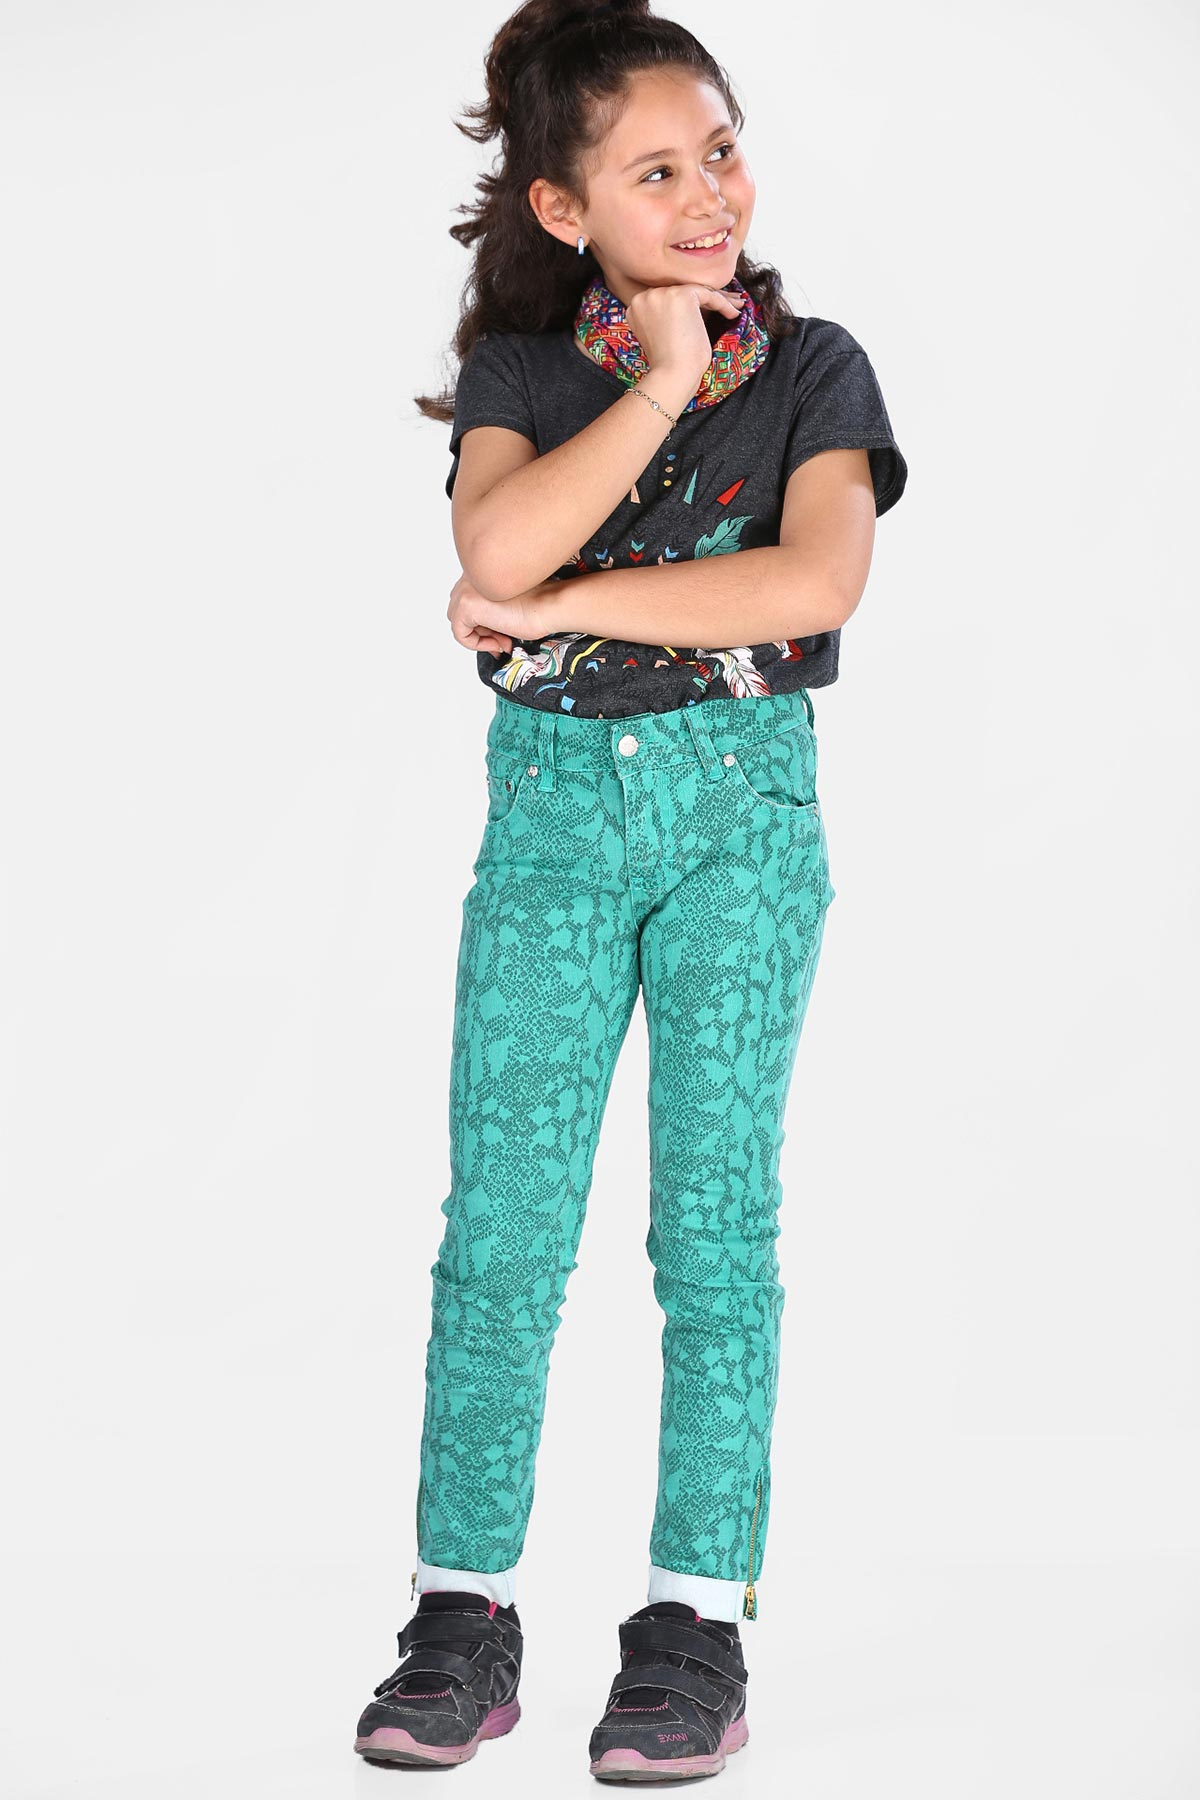 Girl's Patterned Green Pants